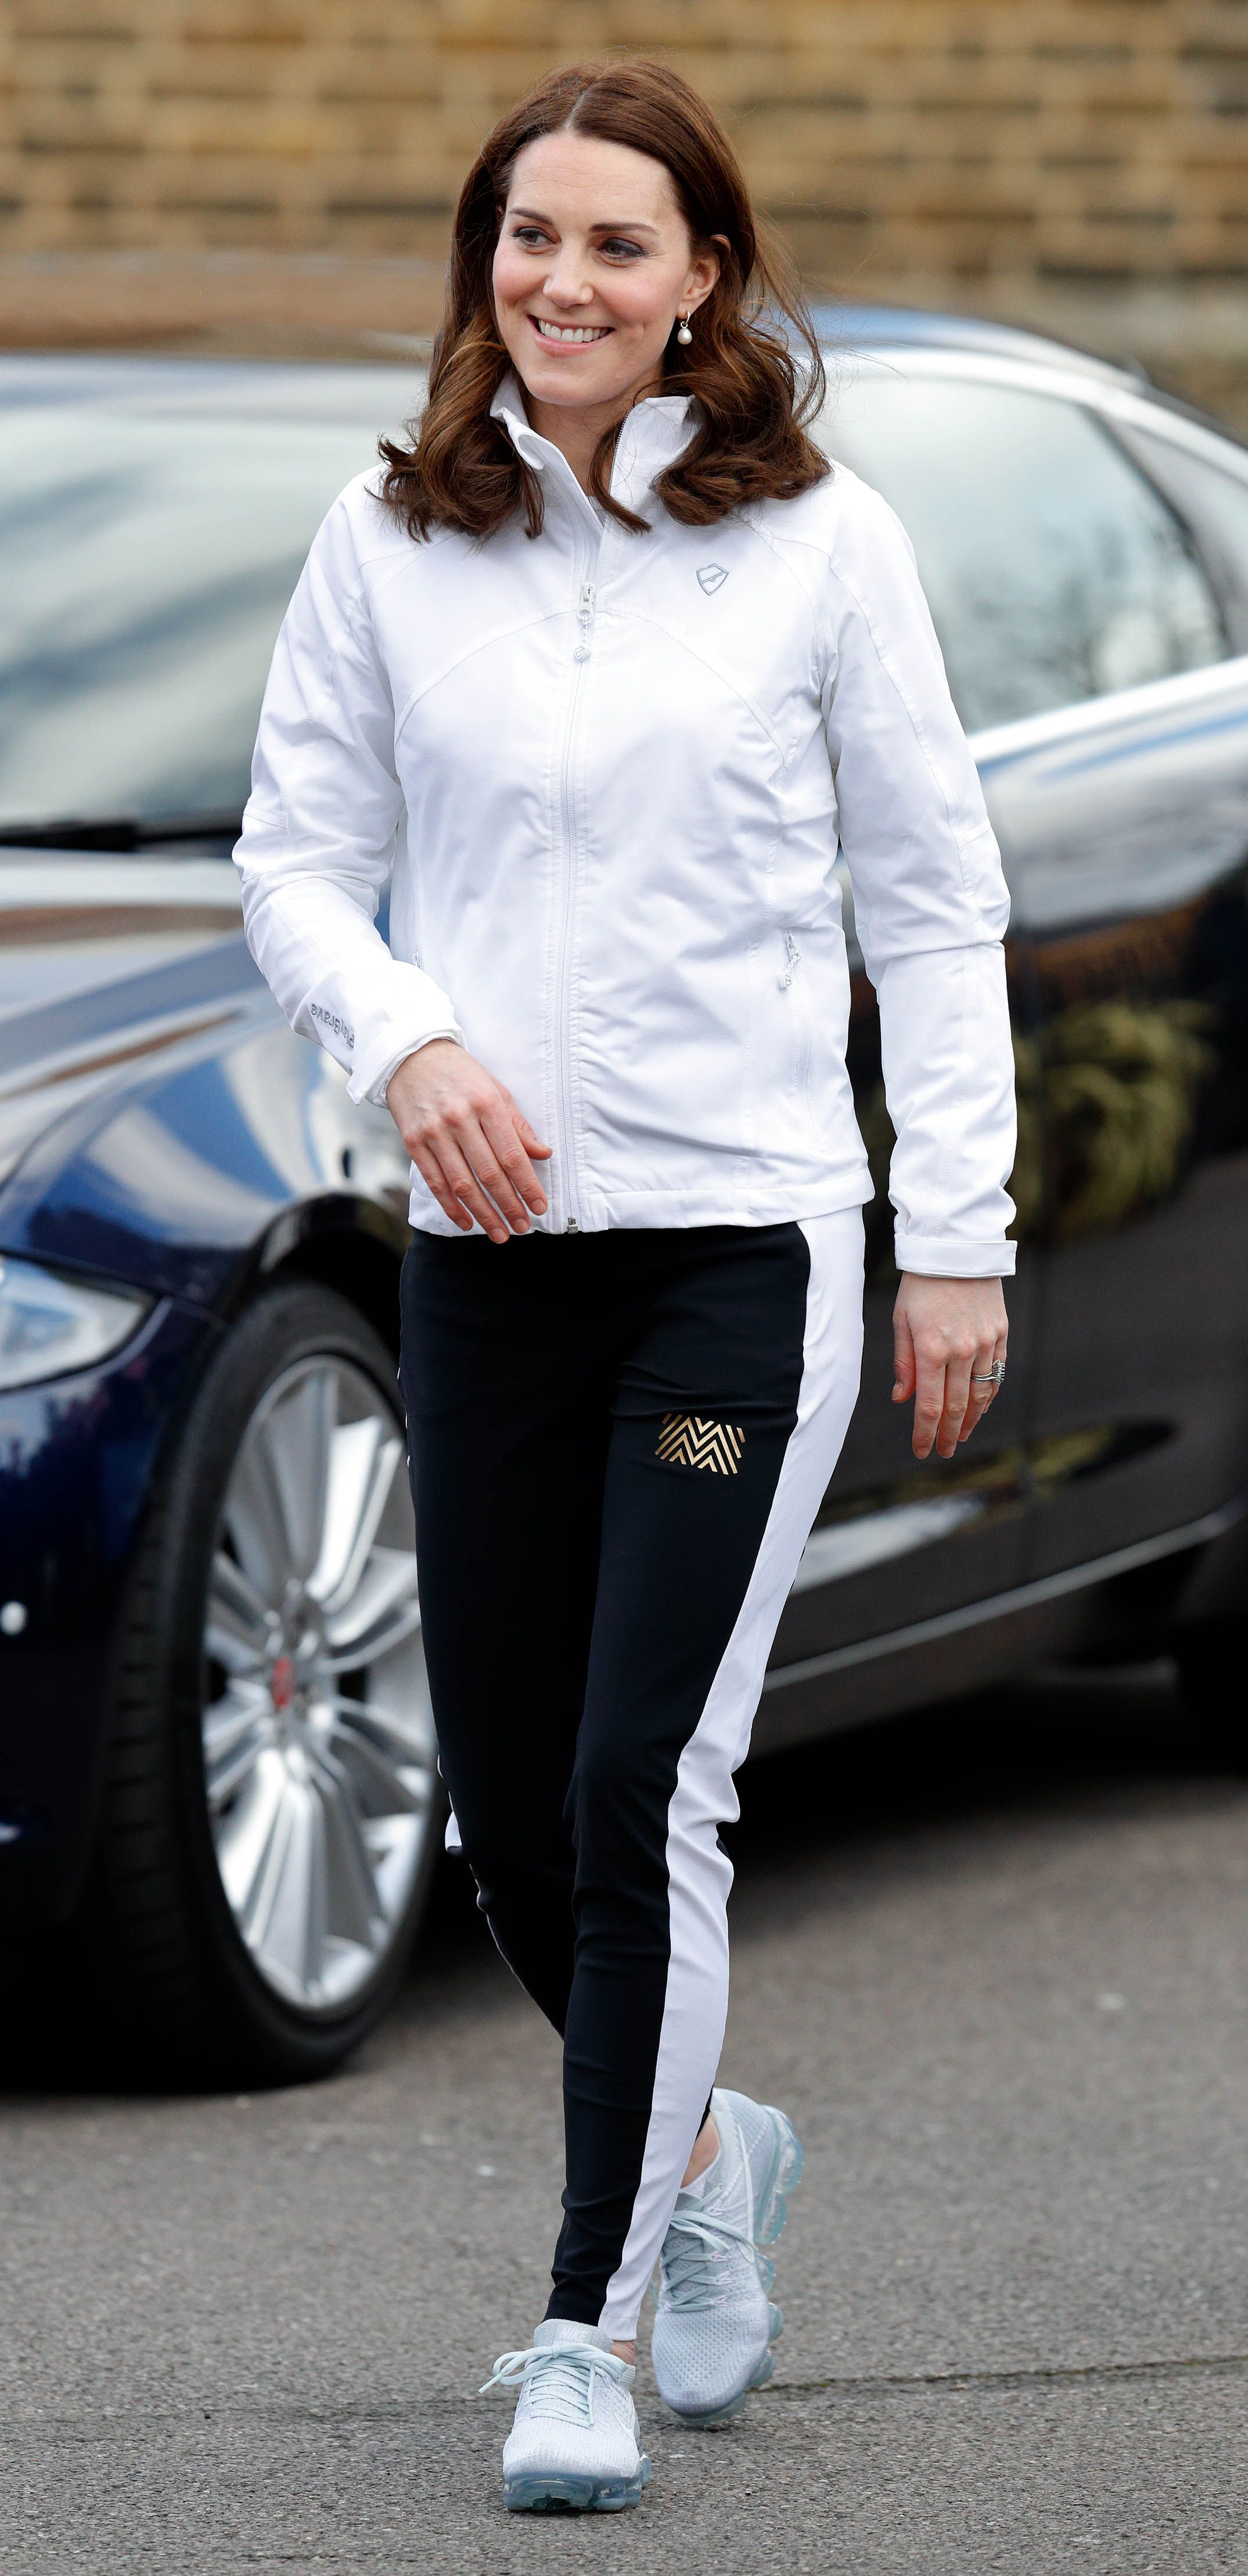 43985e24c45879 Kate Middleton casual style: The Duchess' best off-duty outfits